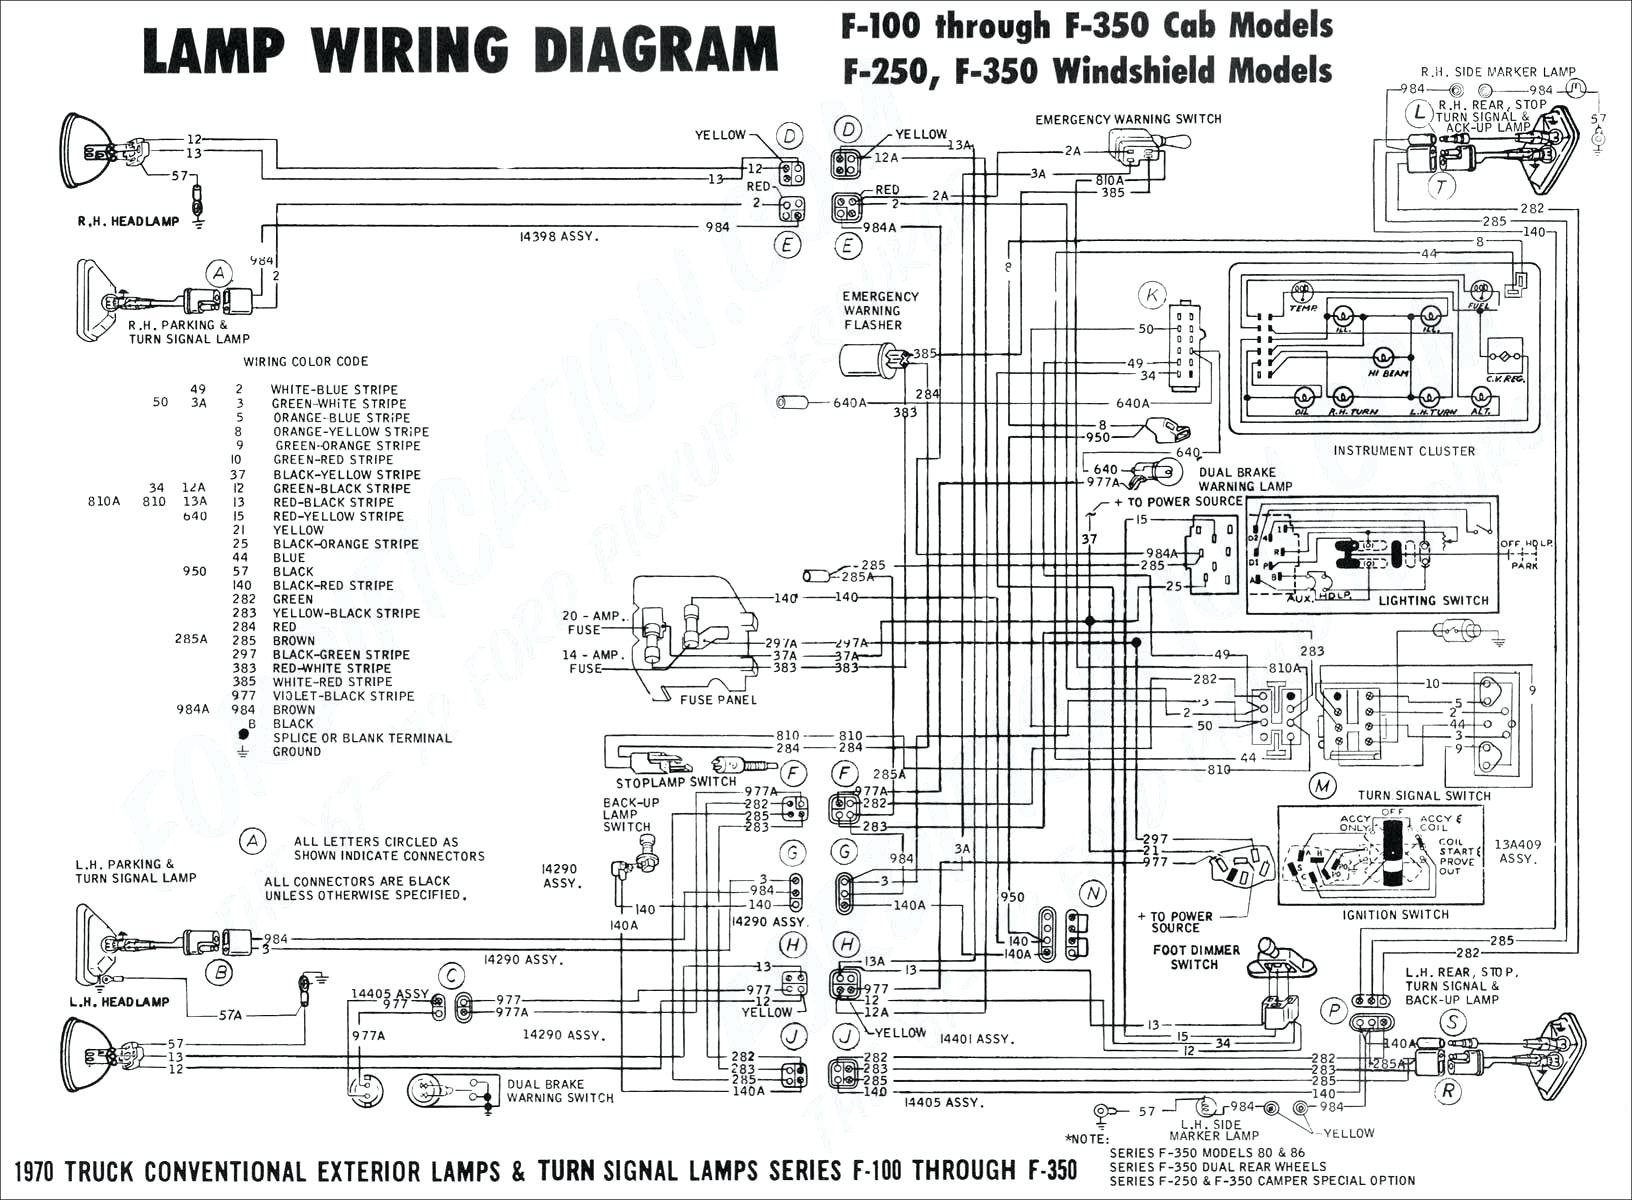 C0756 92 Ford Fiesta Engine Diagram | Digital Resources on 92 ford super duty wiring diagram, 92 ford tempo wiring diagram, 1992 f150 wiring diagram, 92 ford f-150 fuse box diagram, 92 lincoln town car wiring diagram, 92 ford ranger wiring diagram, 92 gmc 1500 wiring diagram, 92 ford f-150 engine diagram, 92 toyota pickup wiring diagram,